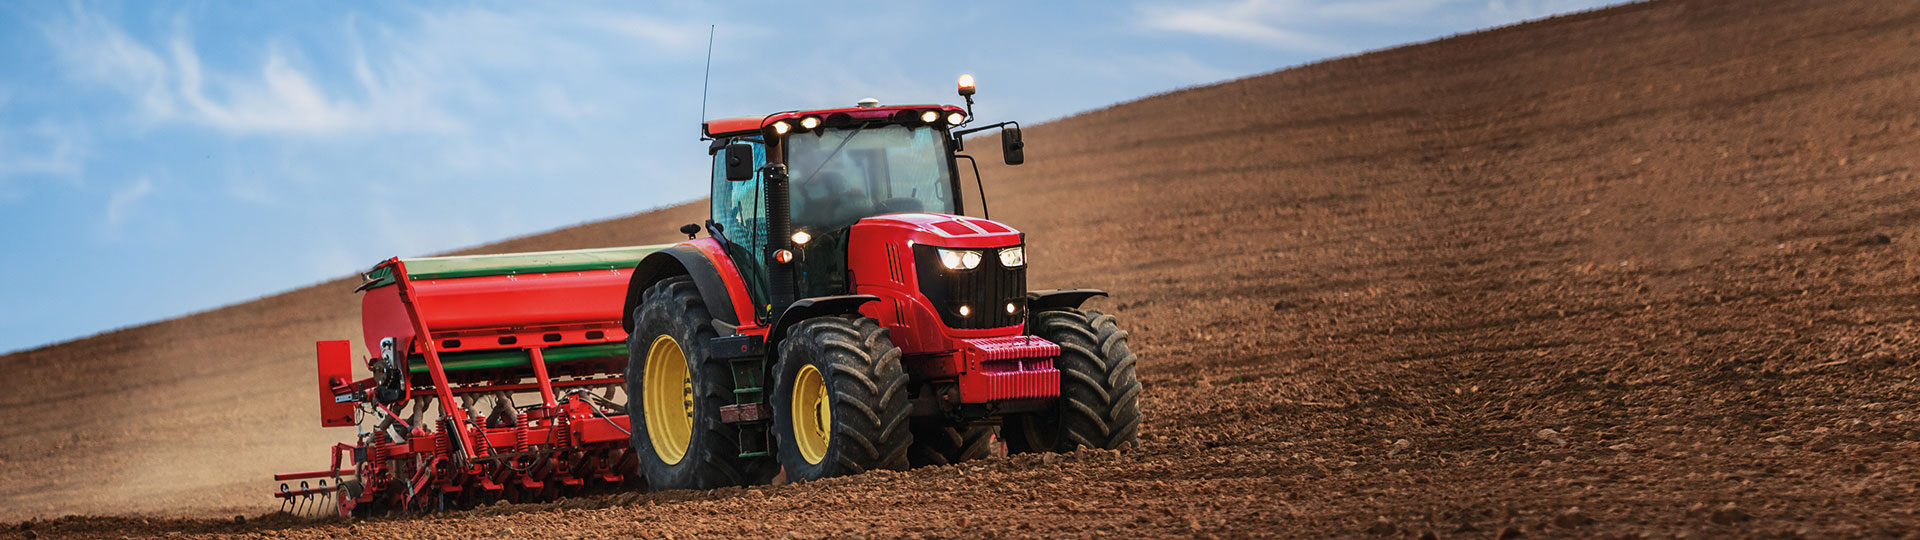 Tractor-on-a-field